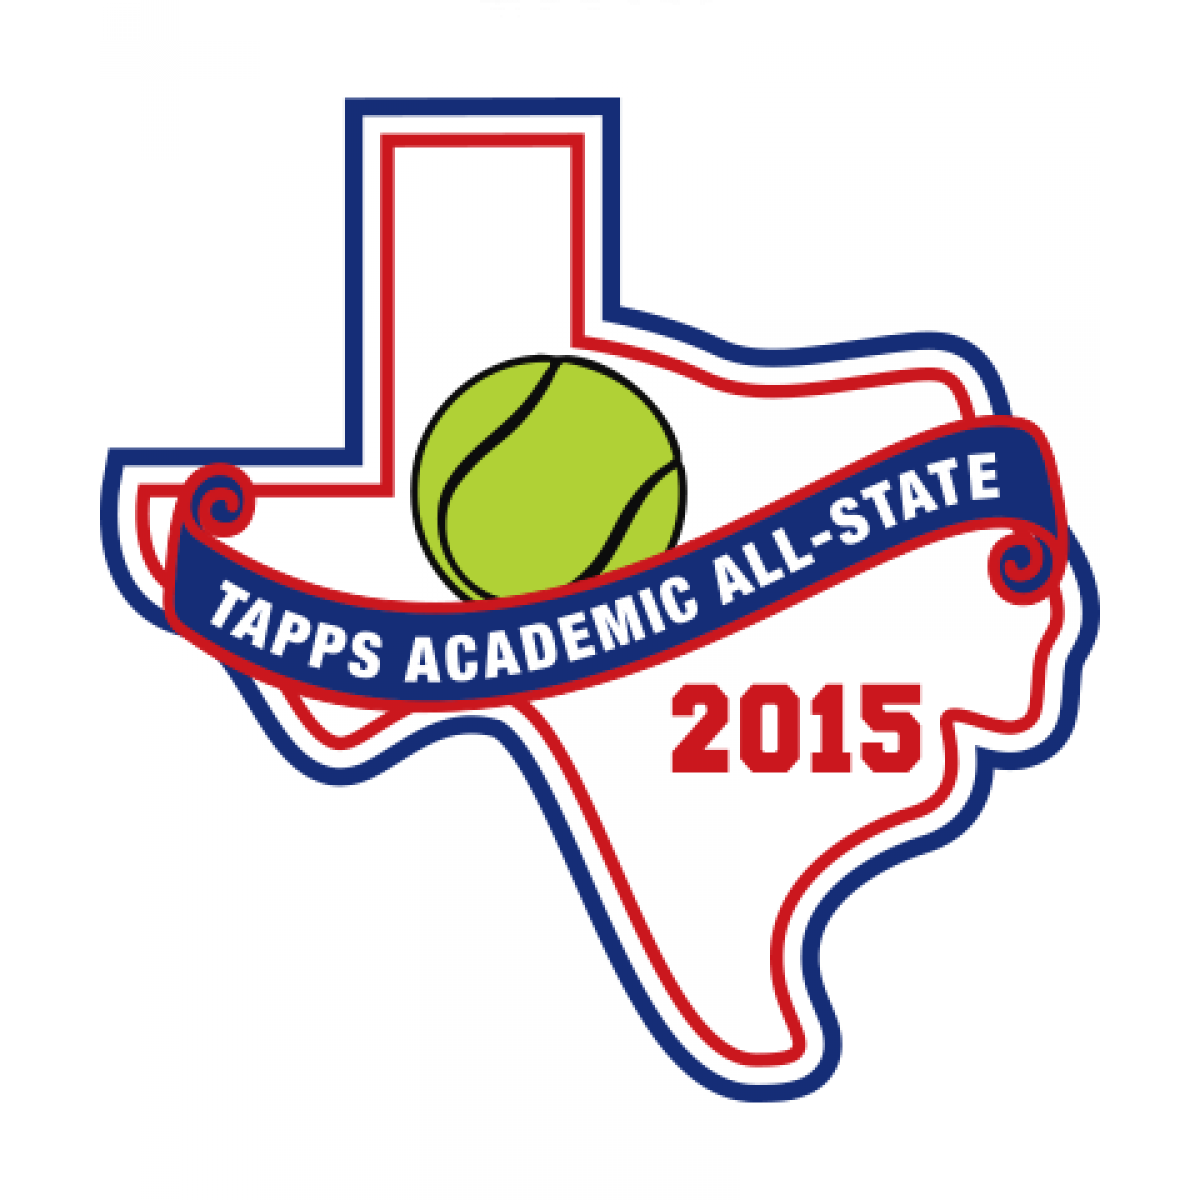 Felt 2015 Academic All State Patch